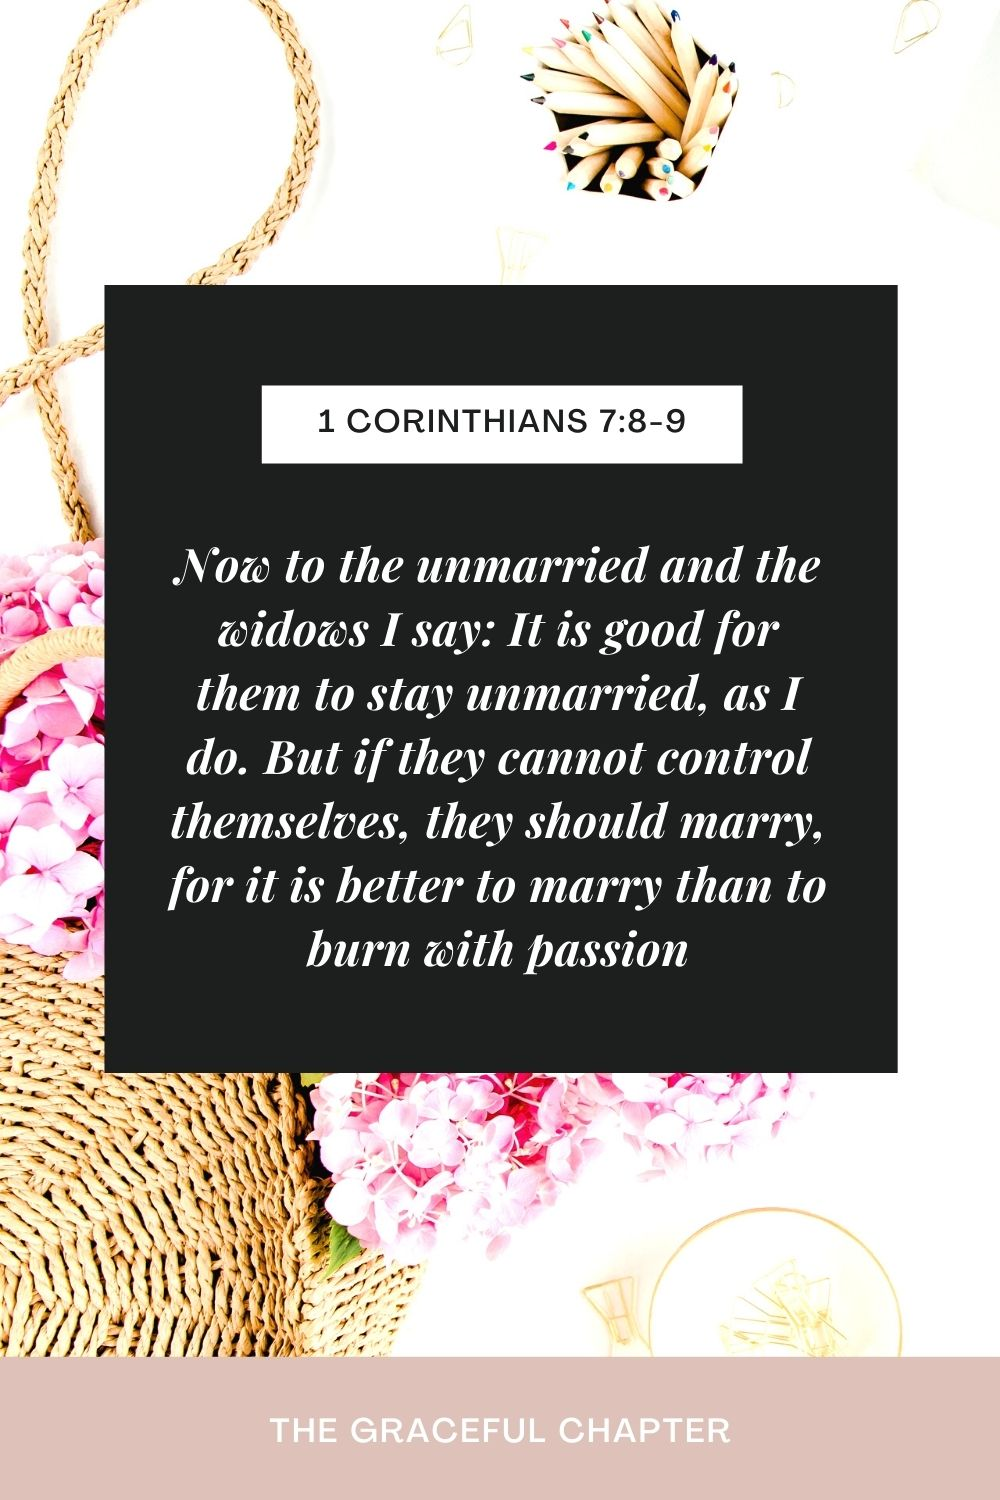 Now to the unmarried and the widows I say: It is good for them to stay unmarried, as I do. But if they cannot control themselves, they should marry, for it is better to marry than to burn with passion. 1 Corinthians 7:8-9